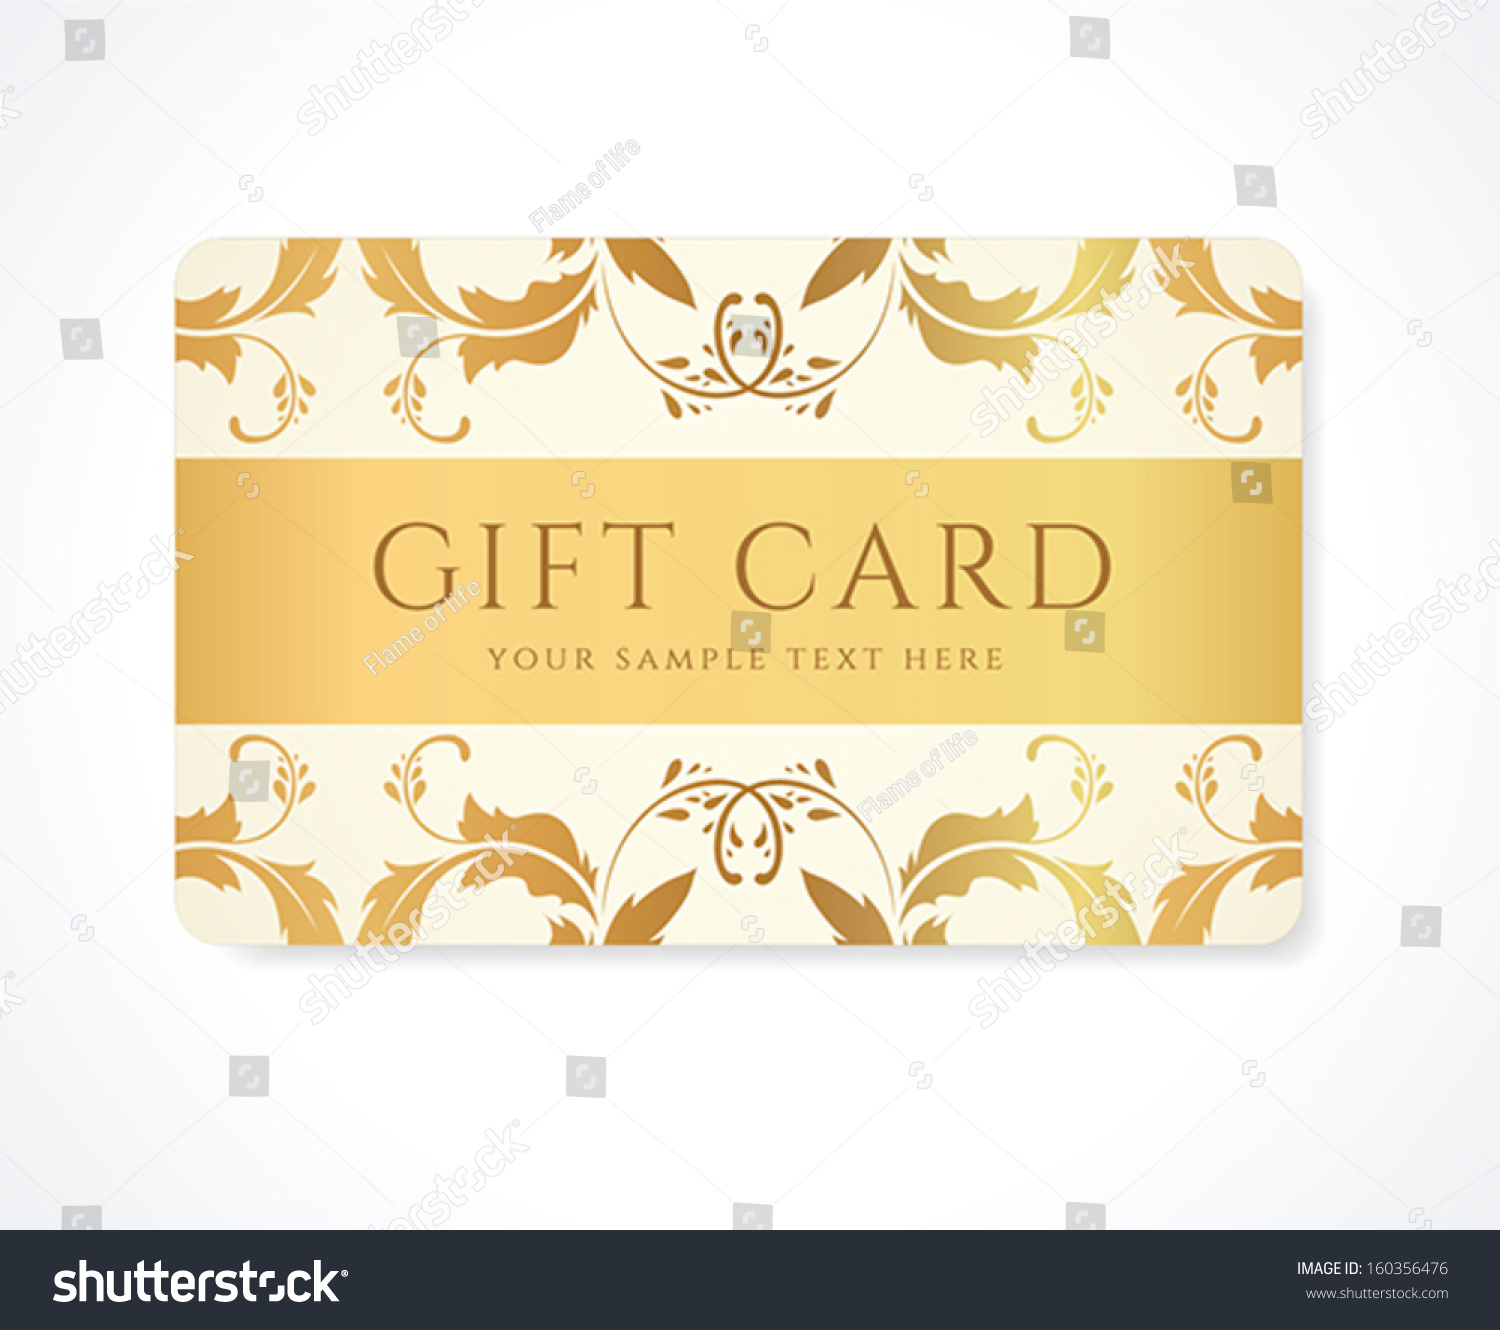 Gift Card Gift Coupon Discount Card Stock Vector